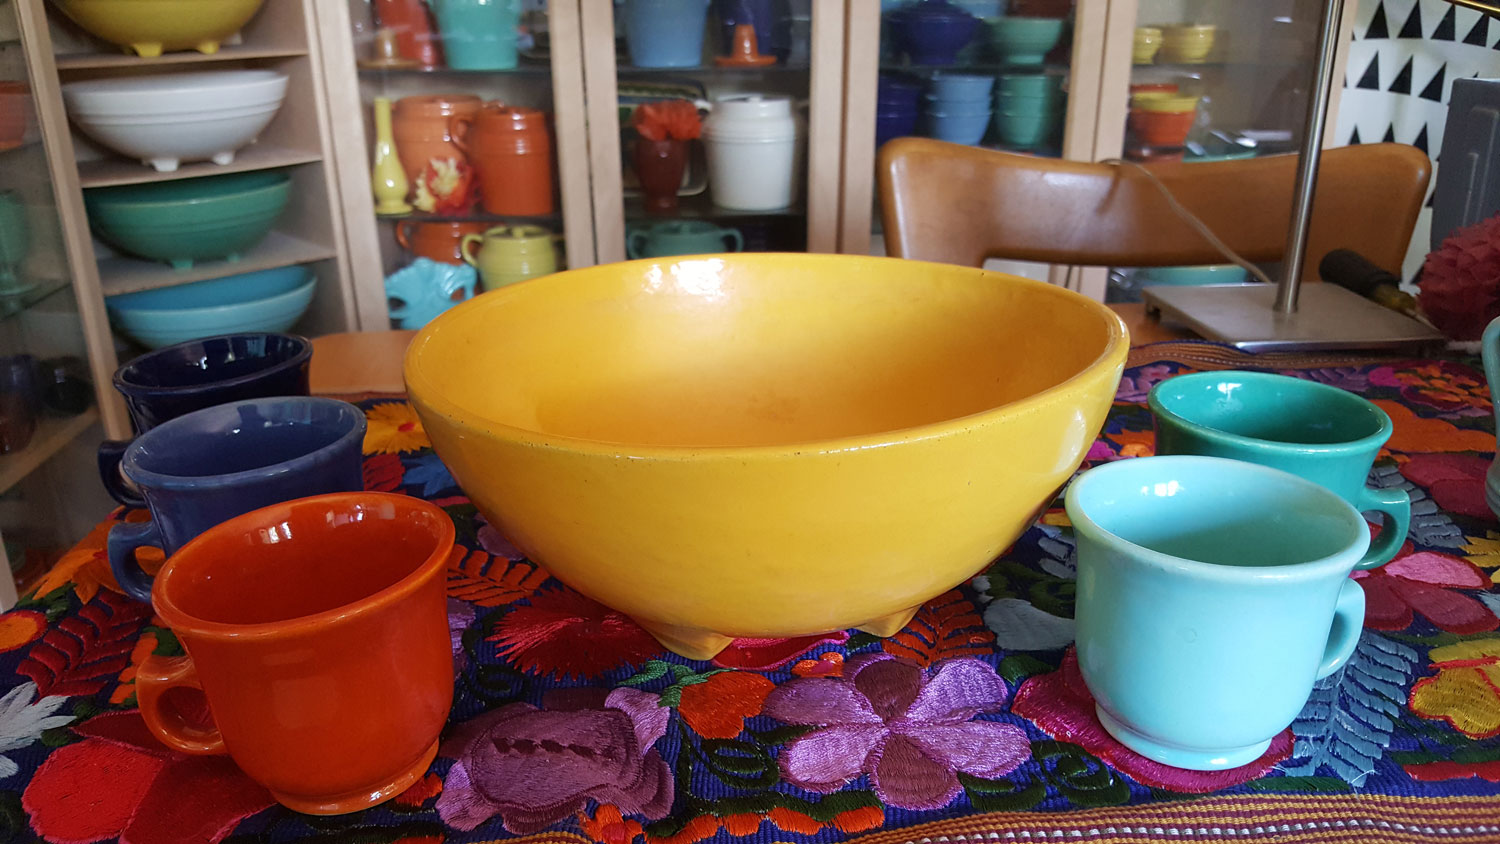 Garden City Bowl and Cups